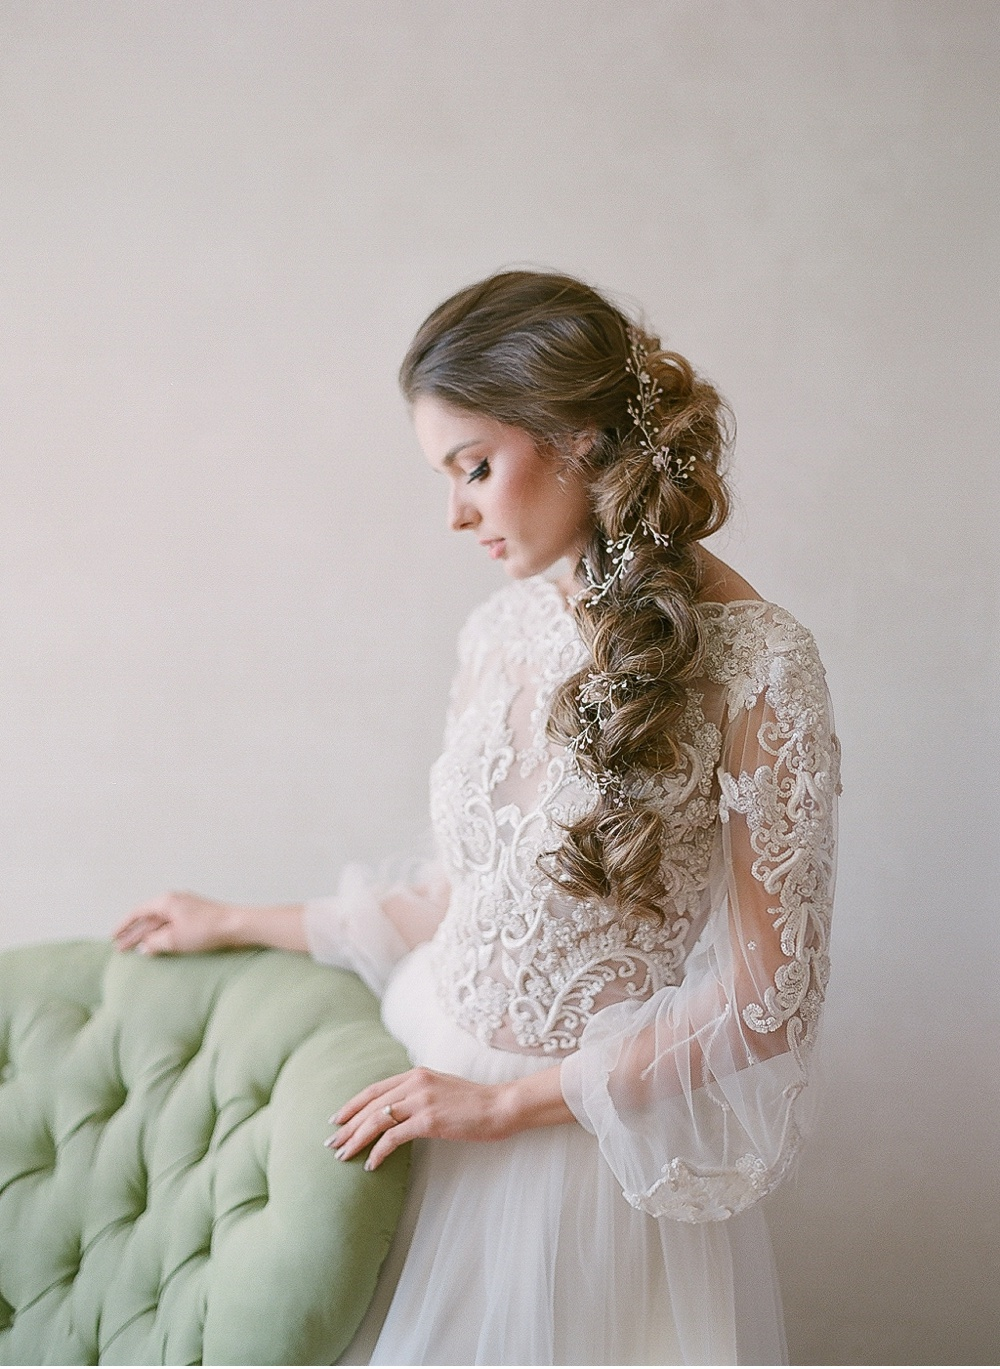 FineArt_Bridal_Shooting__0010.jpg